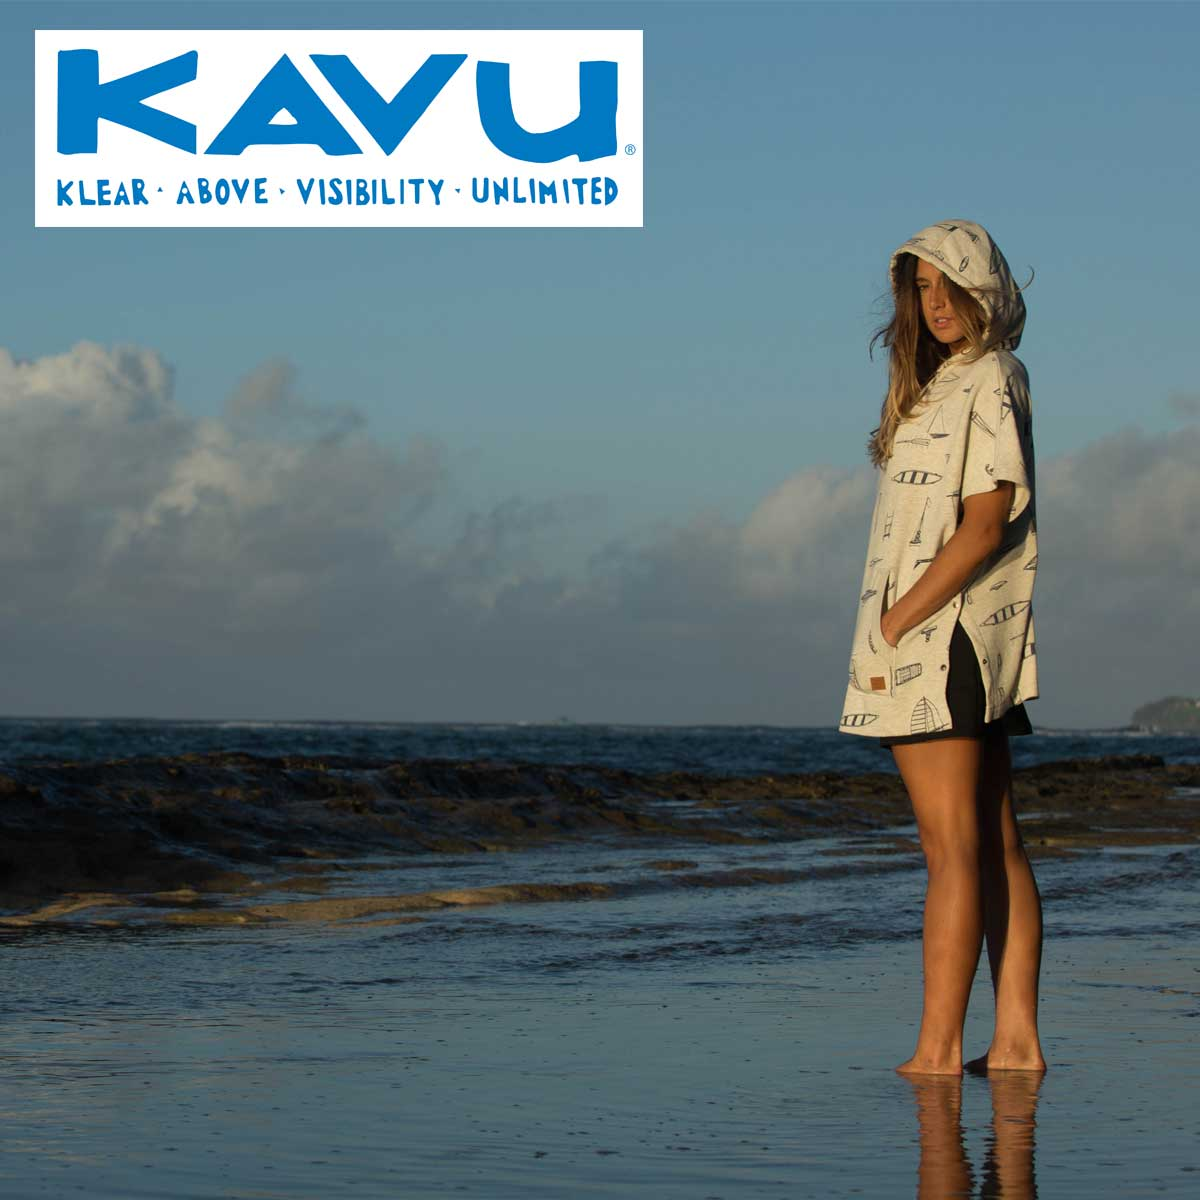 Nashville Kavu Mar Dealer